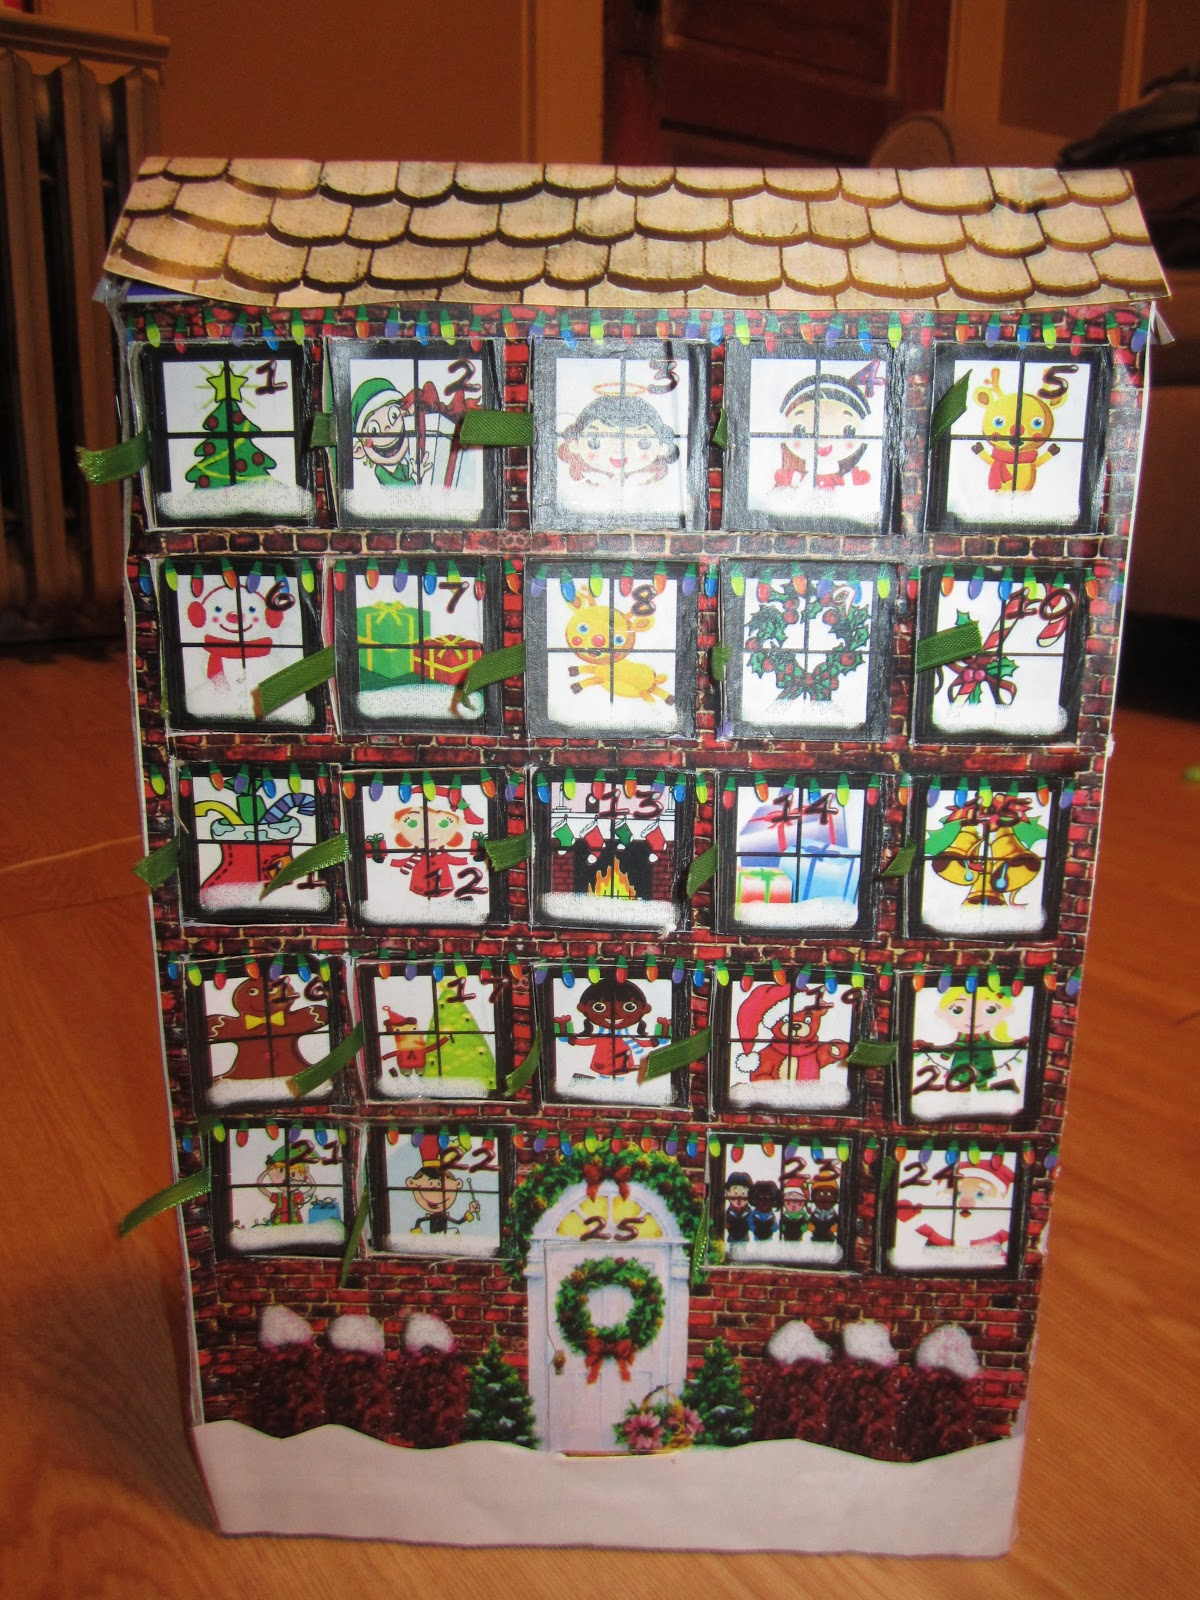 Frugal Nj Frugal Advent Calendar From A Cereal Box